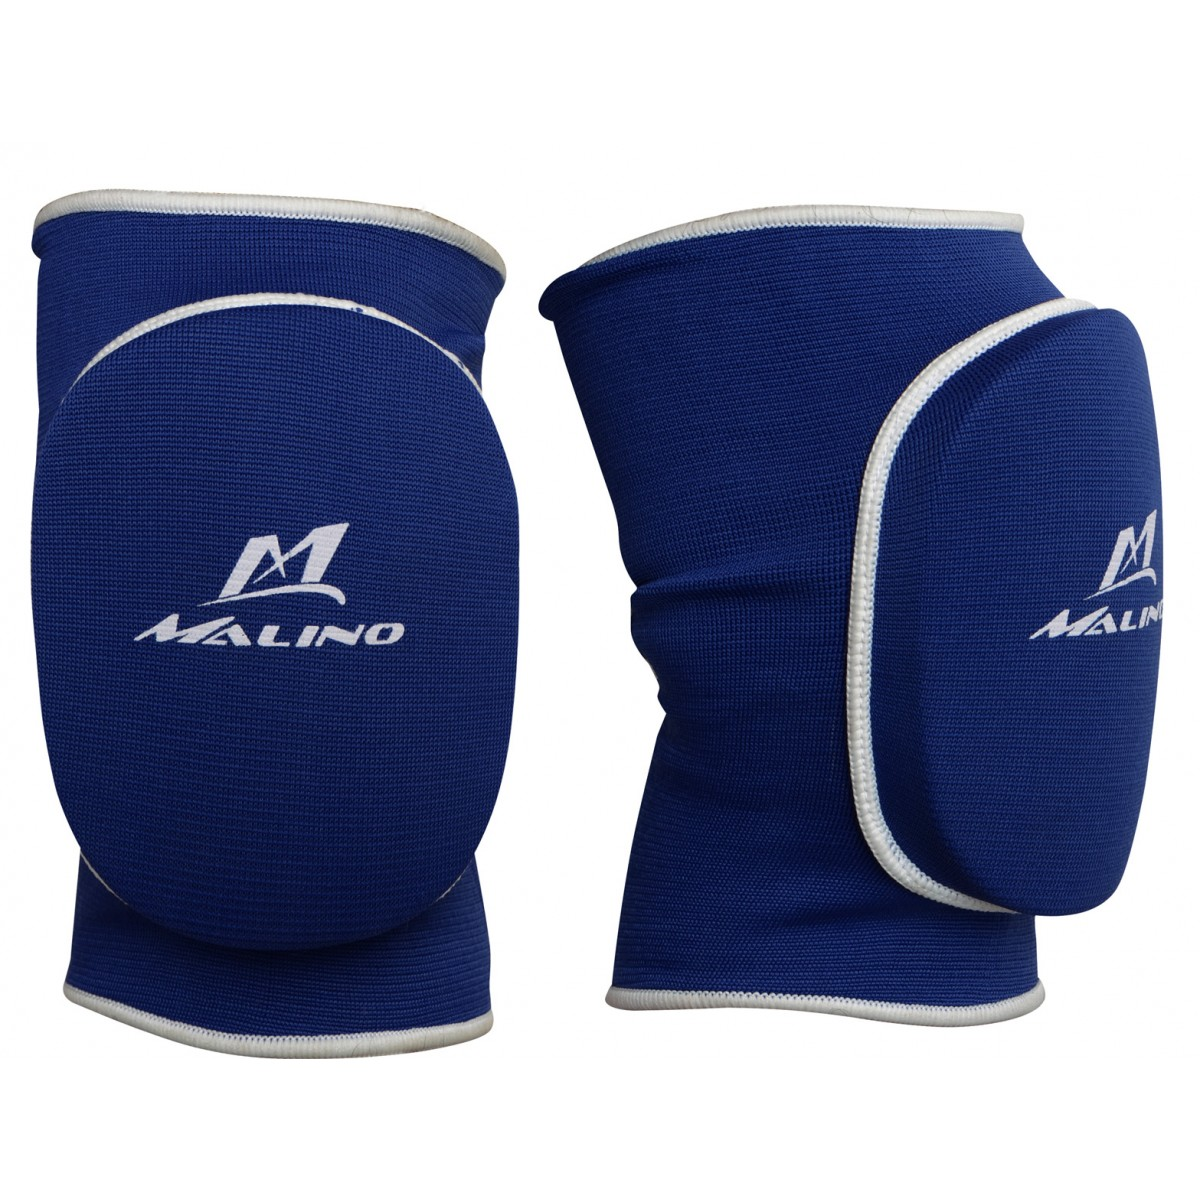 Knee Guards - Knee Pads Blue